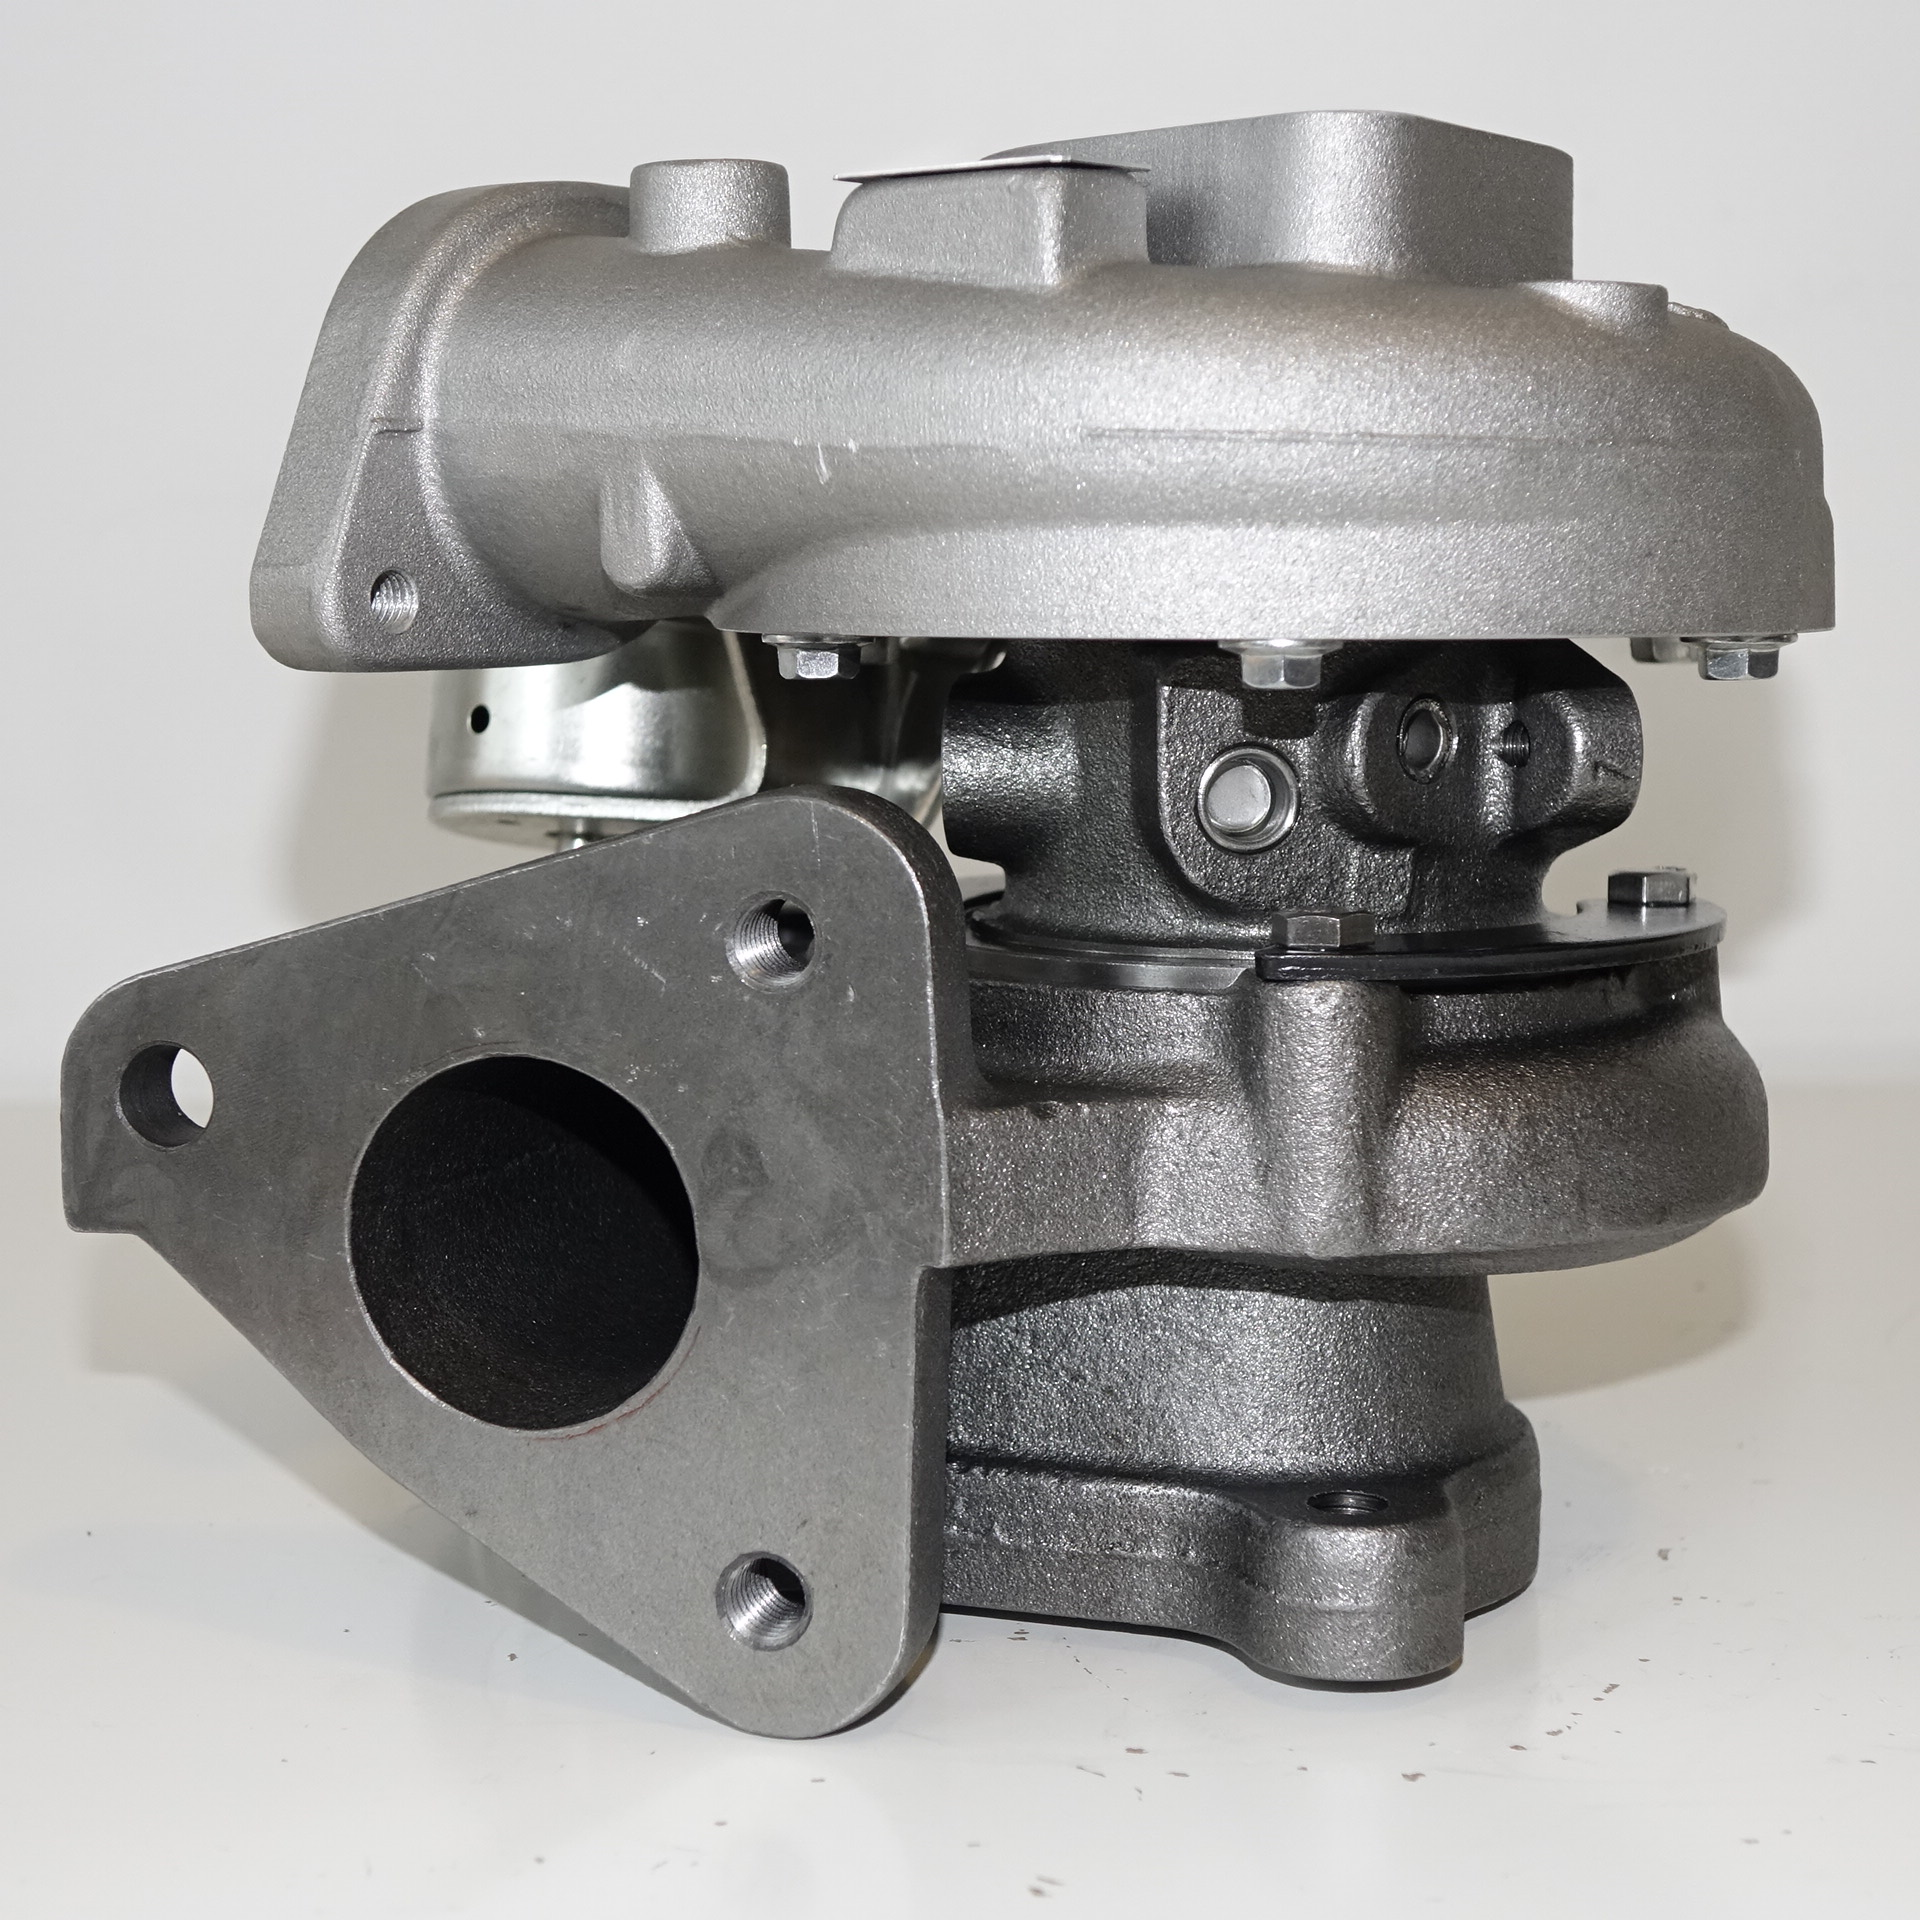 Turbine Used In Turbocharger: Turbochargers Suitable For Nissan Patrol Y61 RD28 2.8L